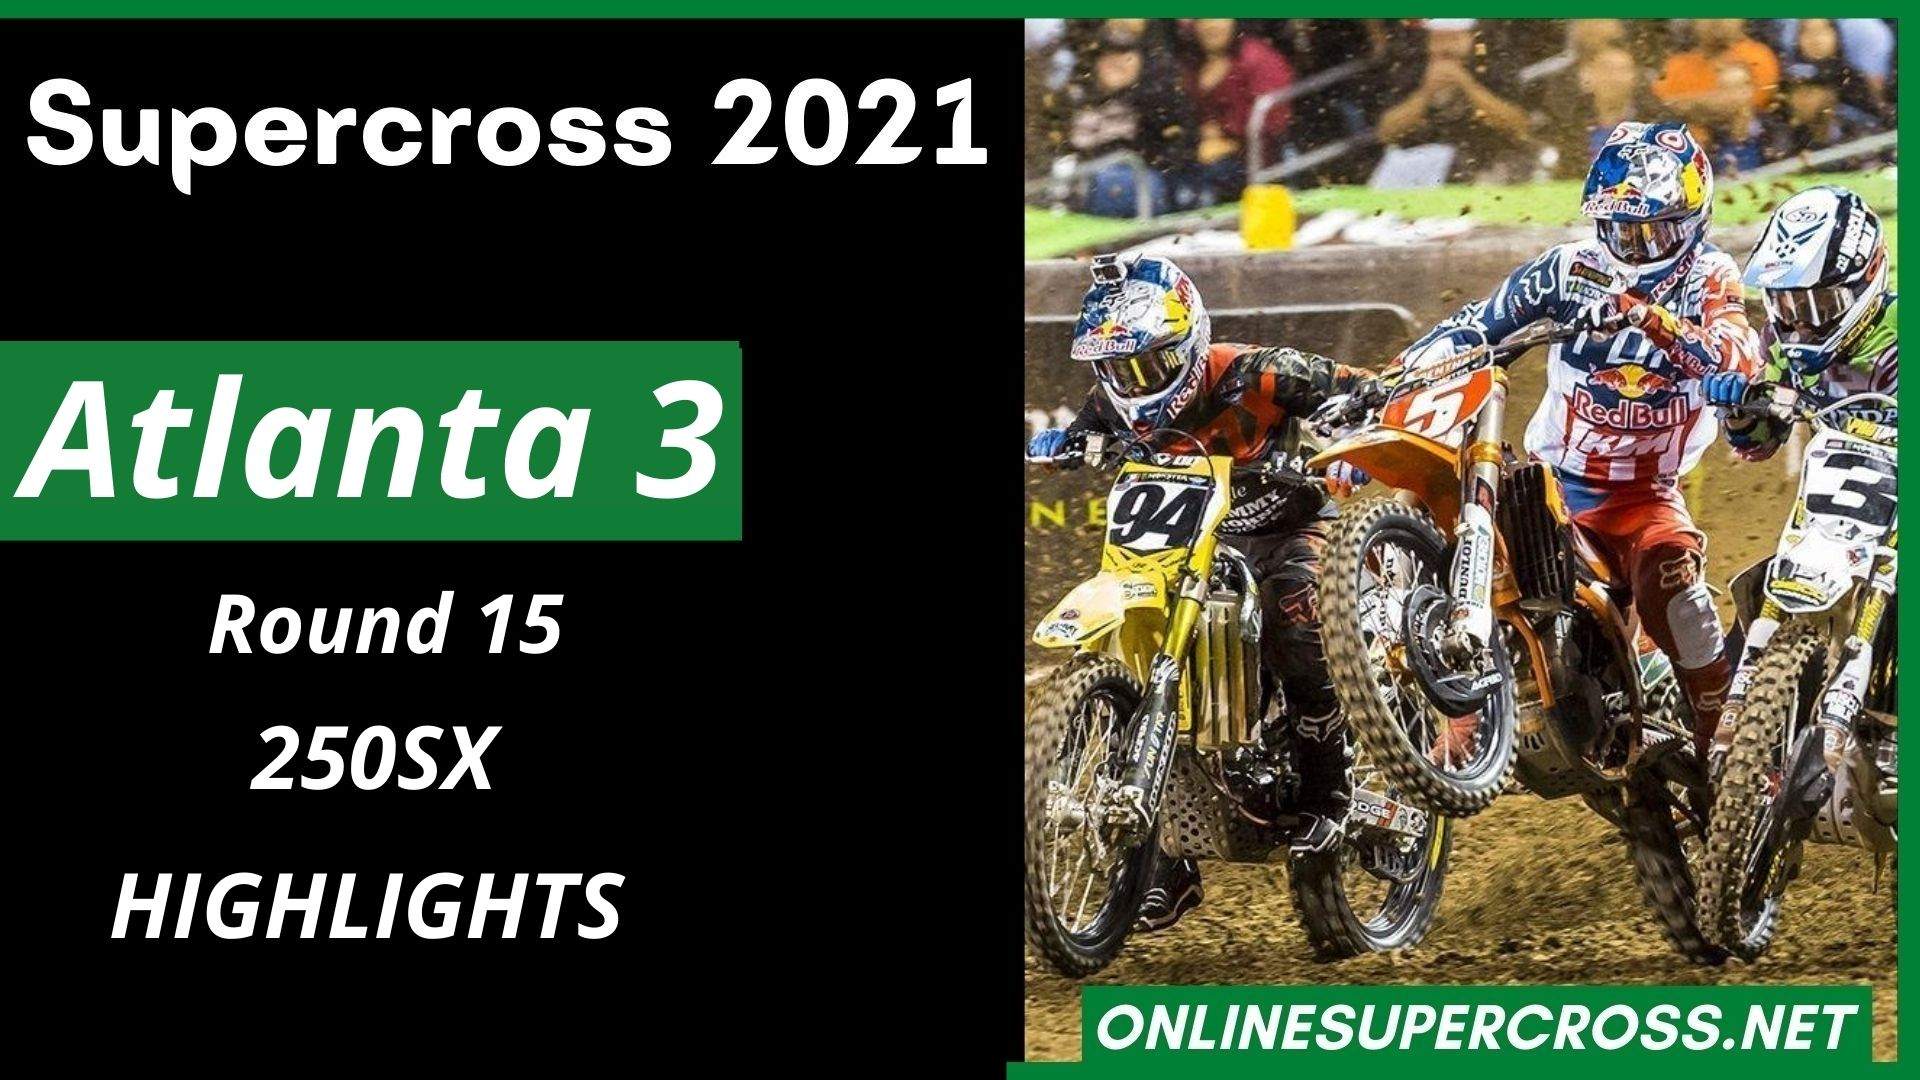 Atlanta 3 Round 15 Supercross 250SX Highlights 2021